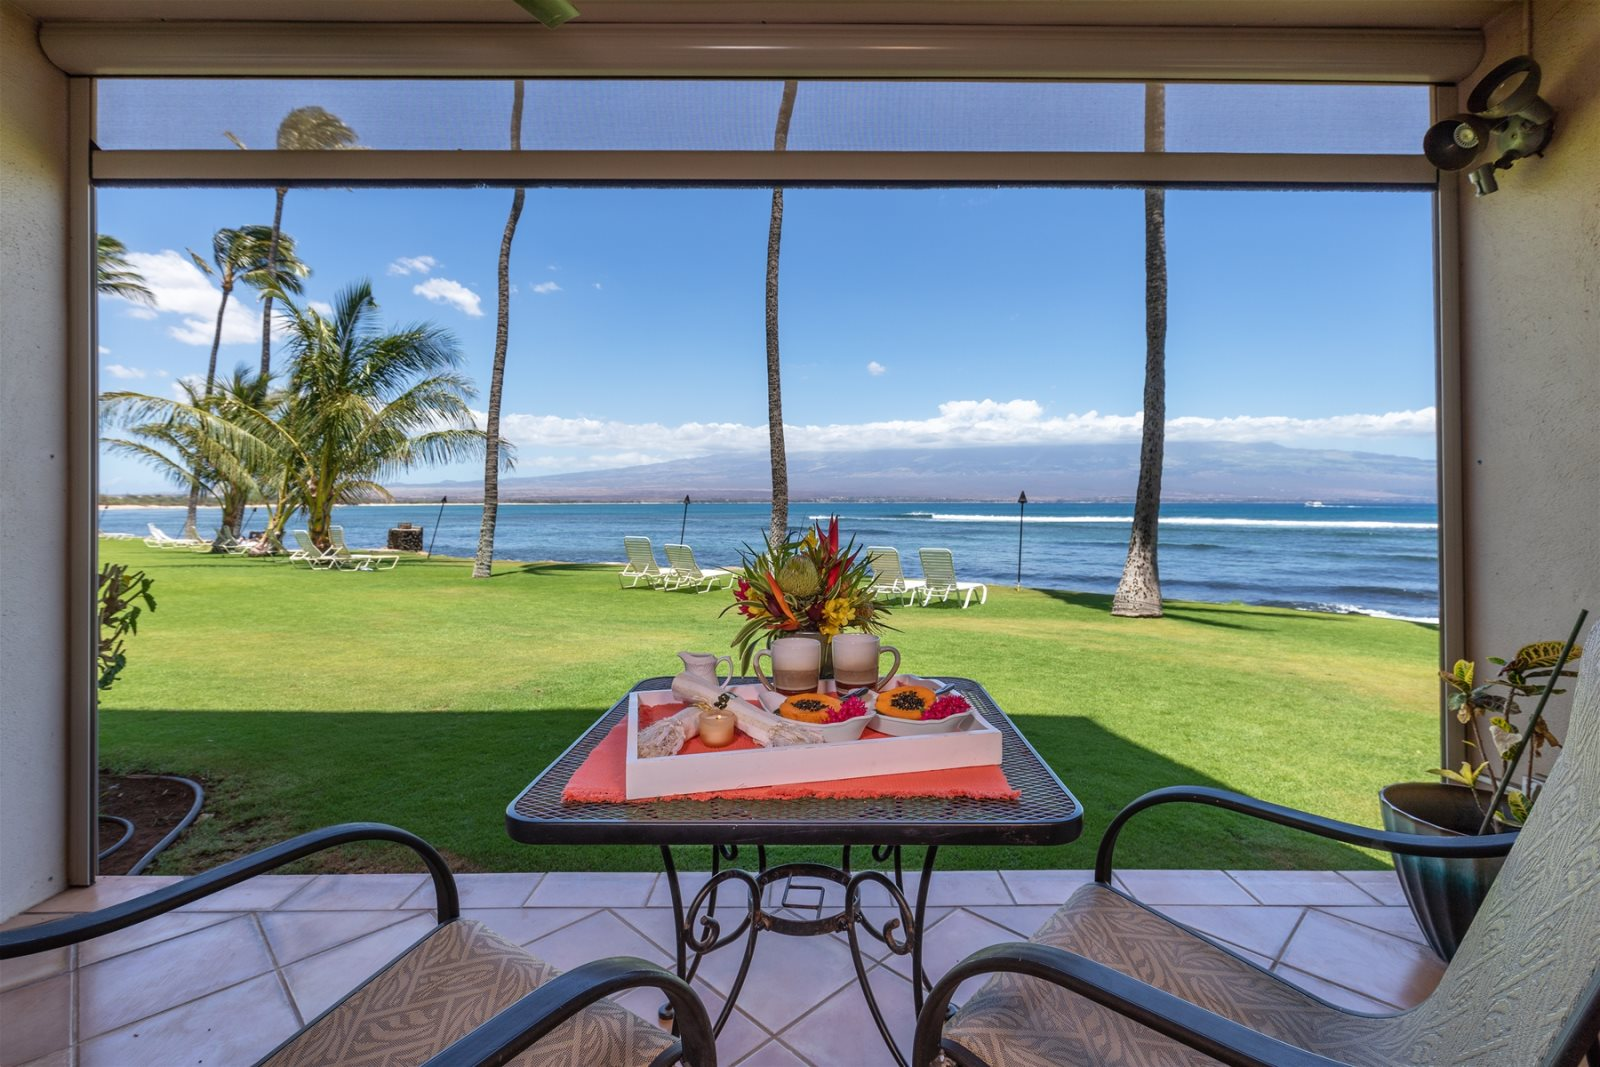 Immaculate Ocean Front Maui Abode Just Steps to the Ocean